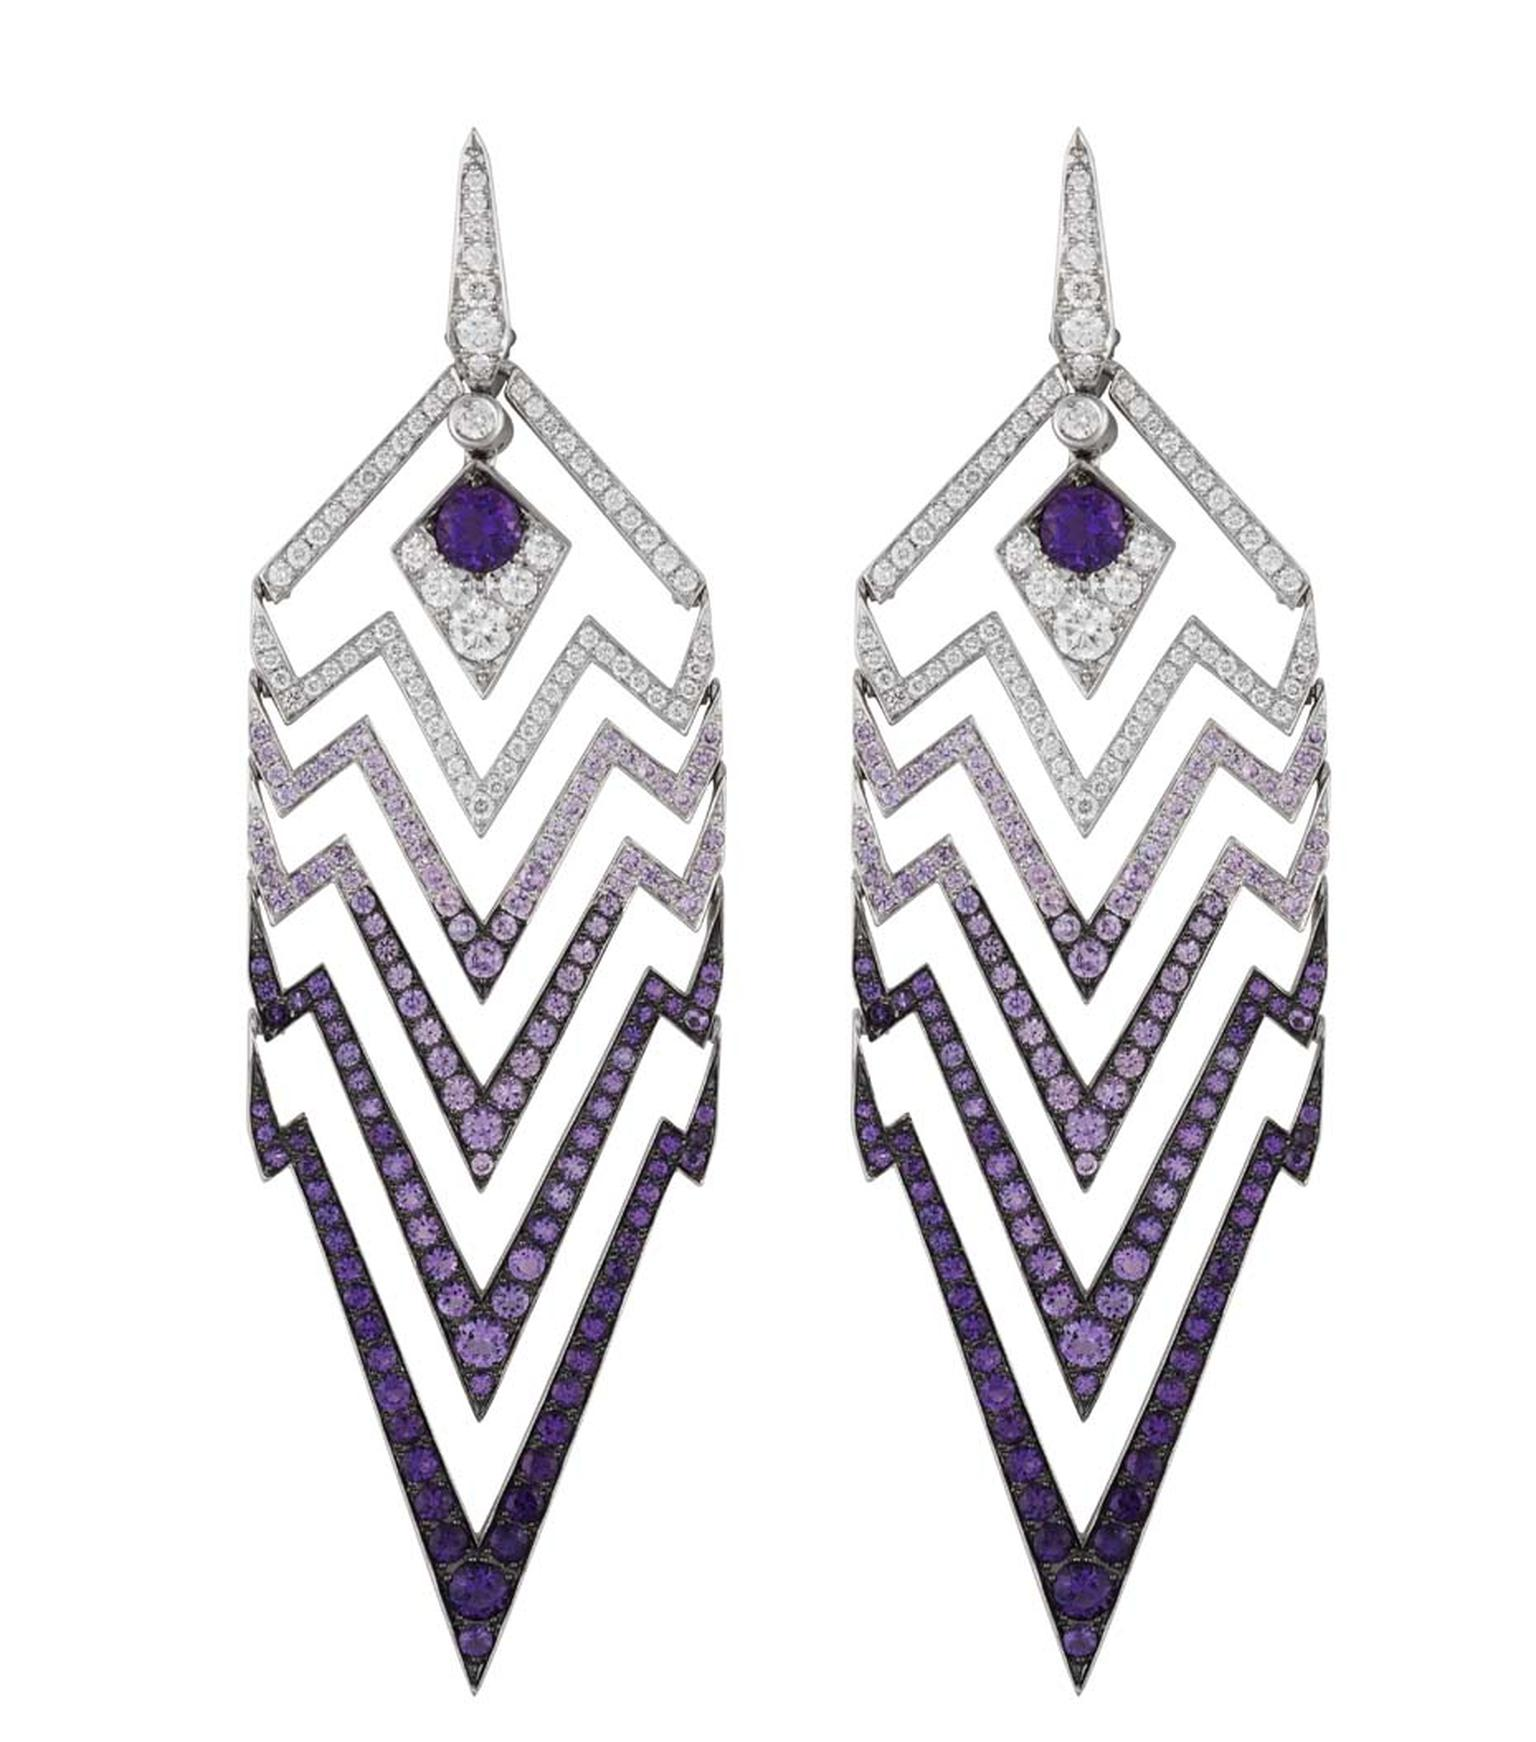 Stephen Webster Lady Stardust white gold earrings with white diamonds and amethysts.